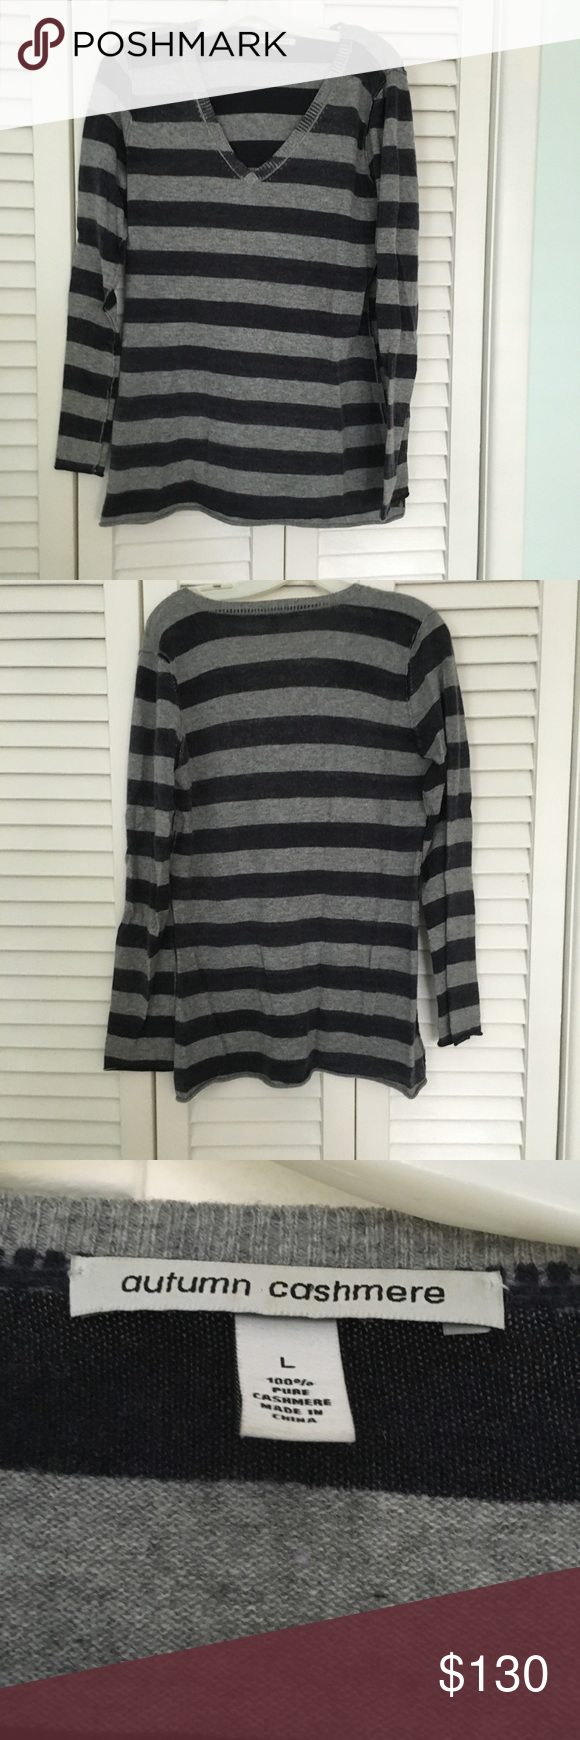 Autumn cashmere striped v-neck sweater | Grey stripes